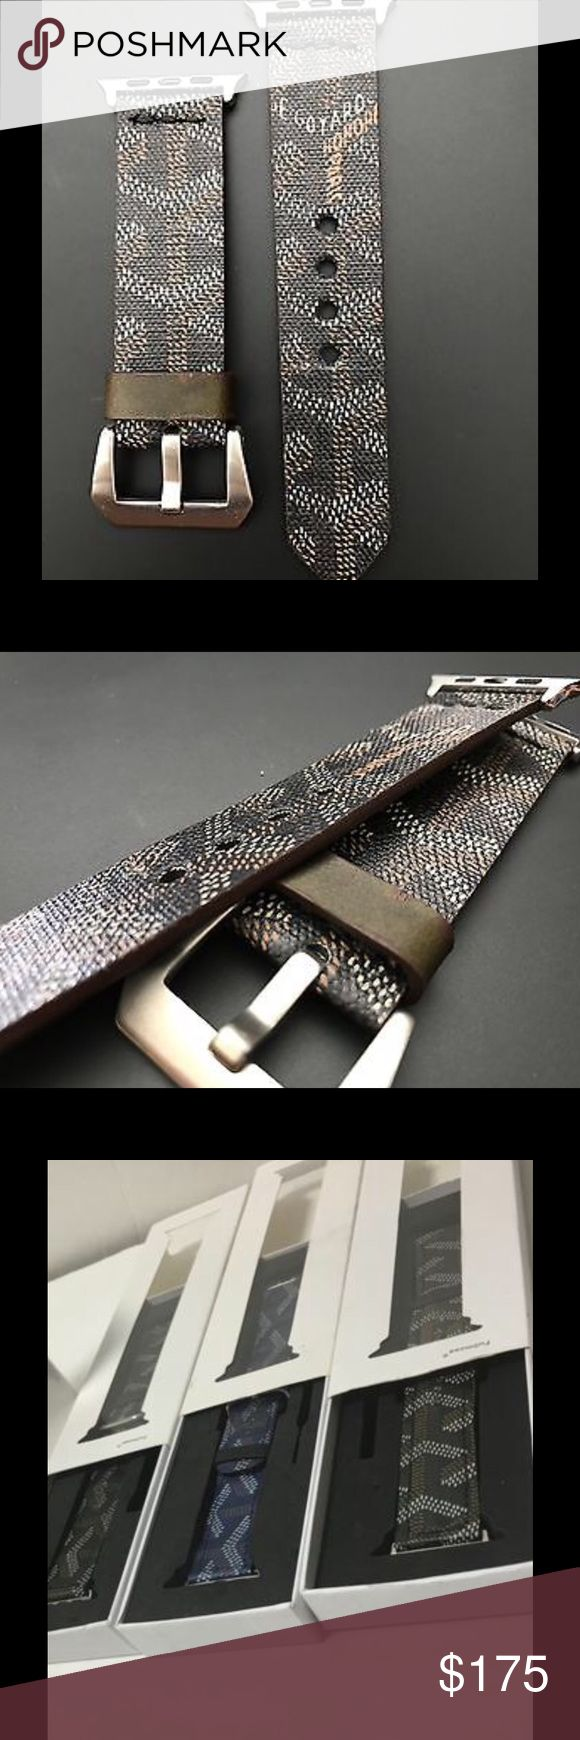 Goyard Apple Watch strap/band Goyard Apple Watch strap handmade from 100% authentic Goyard bag material. Currently have red, black, and blue in stock. All 3 colors available for both the 38mm and 42mm Apple Watch. Upon checkout please indicate your preferred color and size. Open to reasonable offers. Please inquire about discounted pricing! Please ask any questions. Thanks and have a great day :) Goyard Accessories Watches